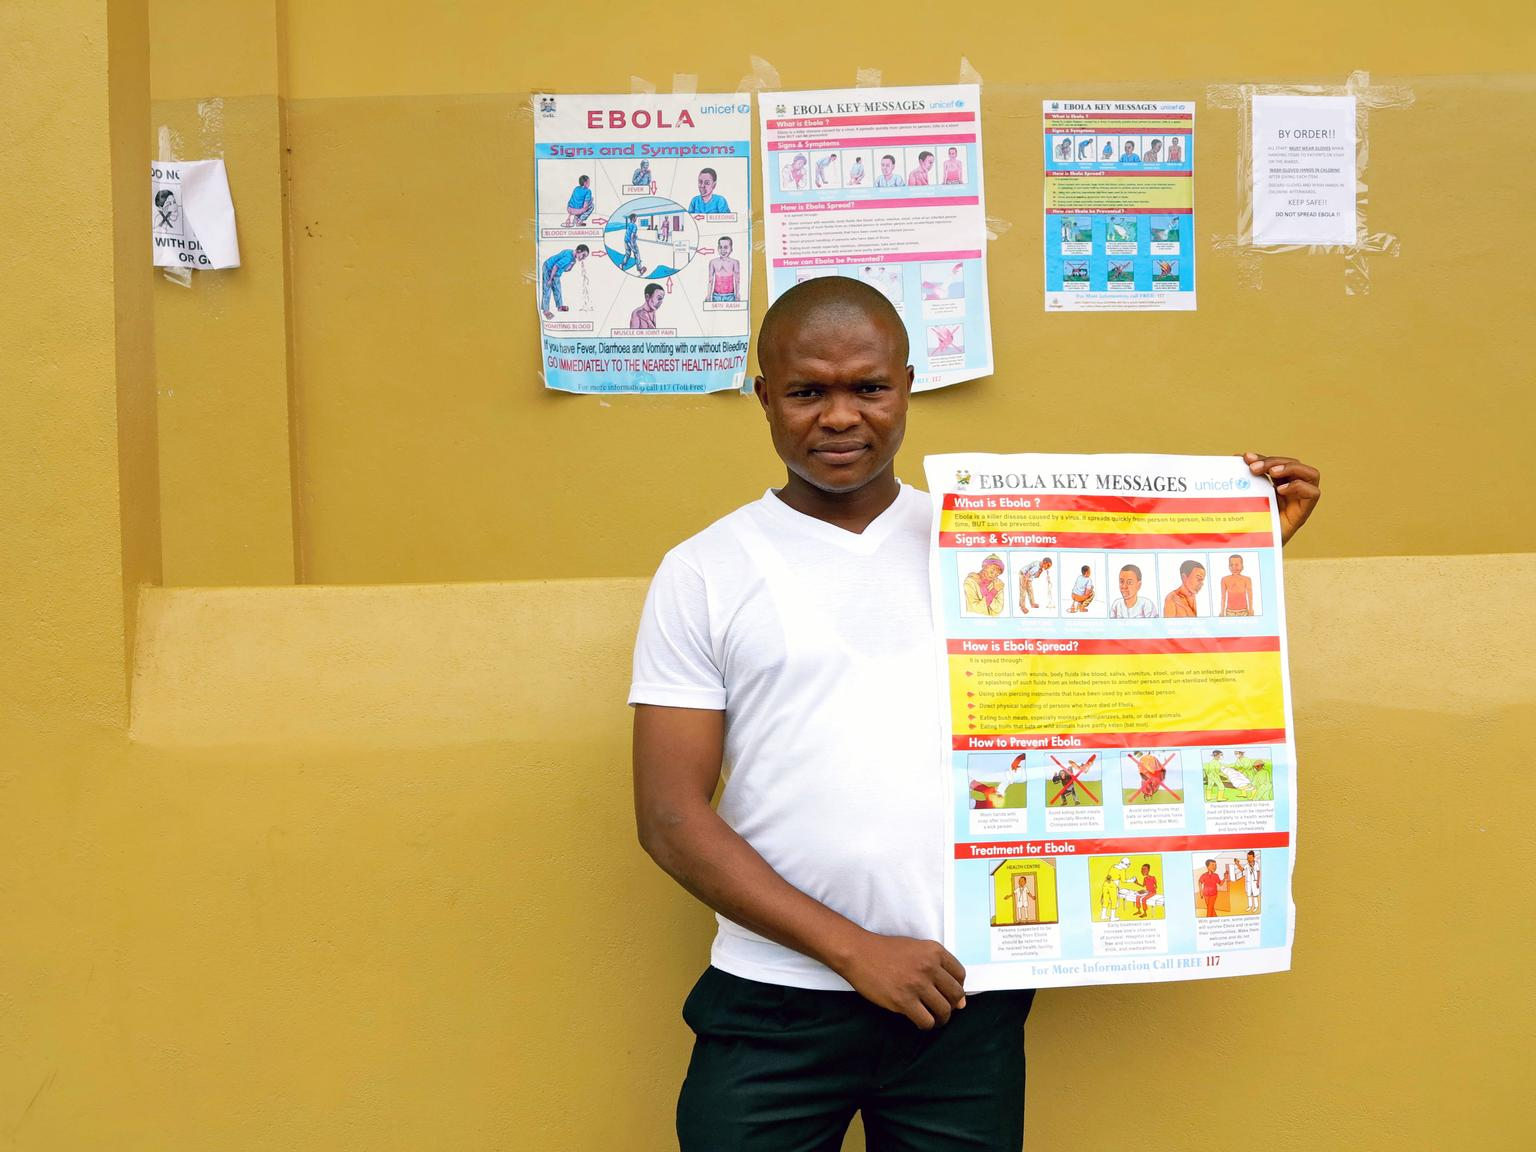 In July 2014 in Sierra Leone, Joseph Kamara, a pharmacist at Kenema Government Hospital, holds a poster bearing information on the symptoms of Ebola virus disease (EVD) and best practices to prevent its spread, in the city of Kenema, Eastern Province.